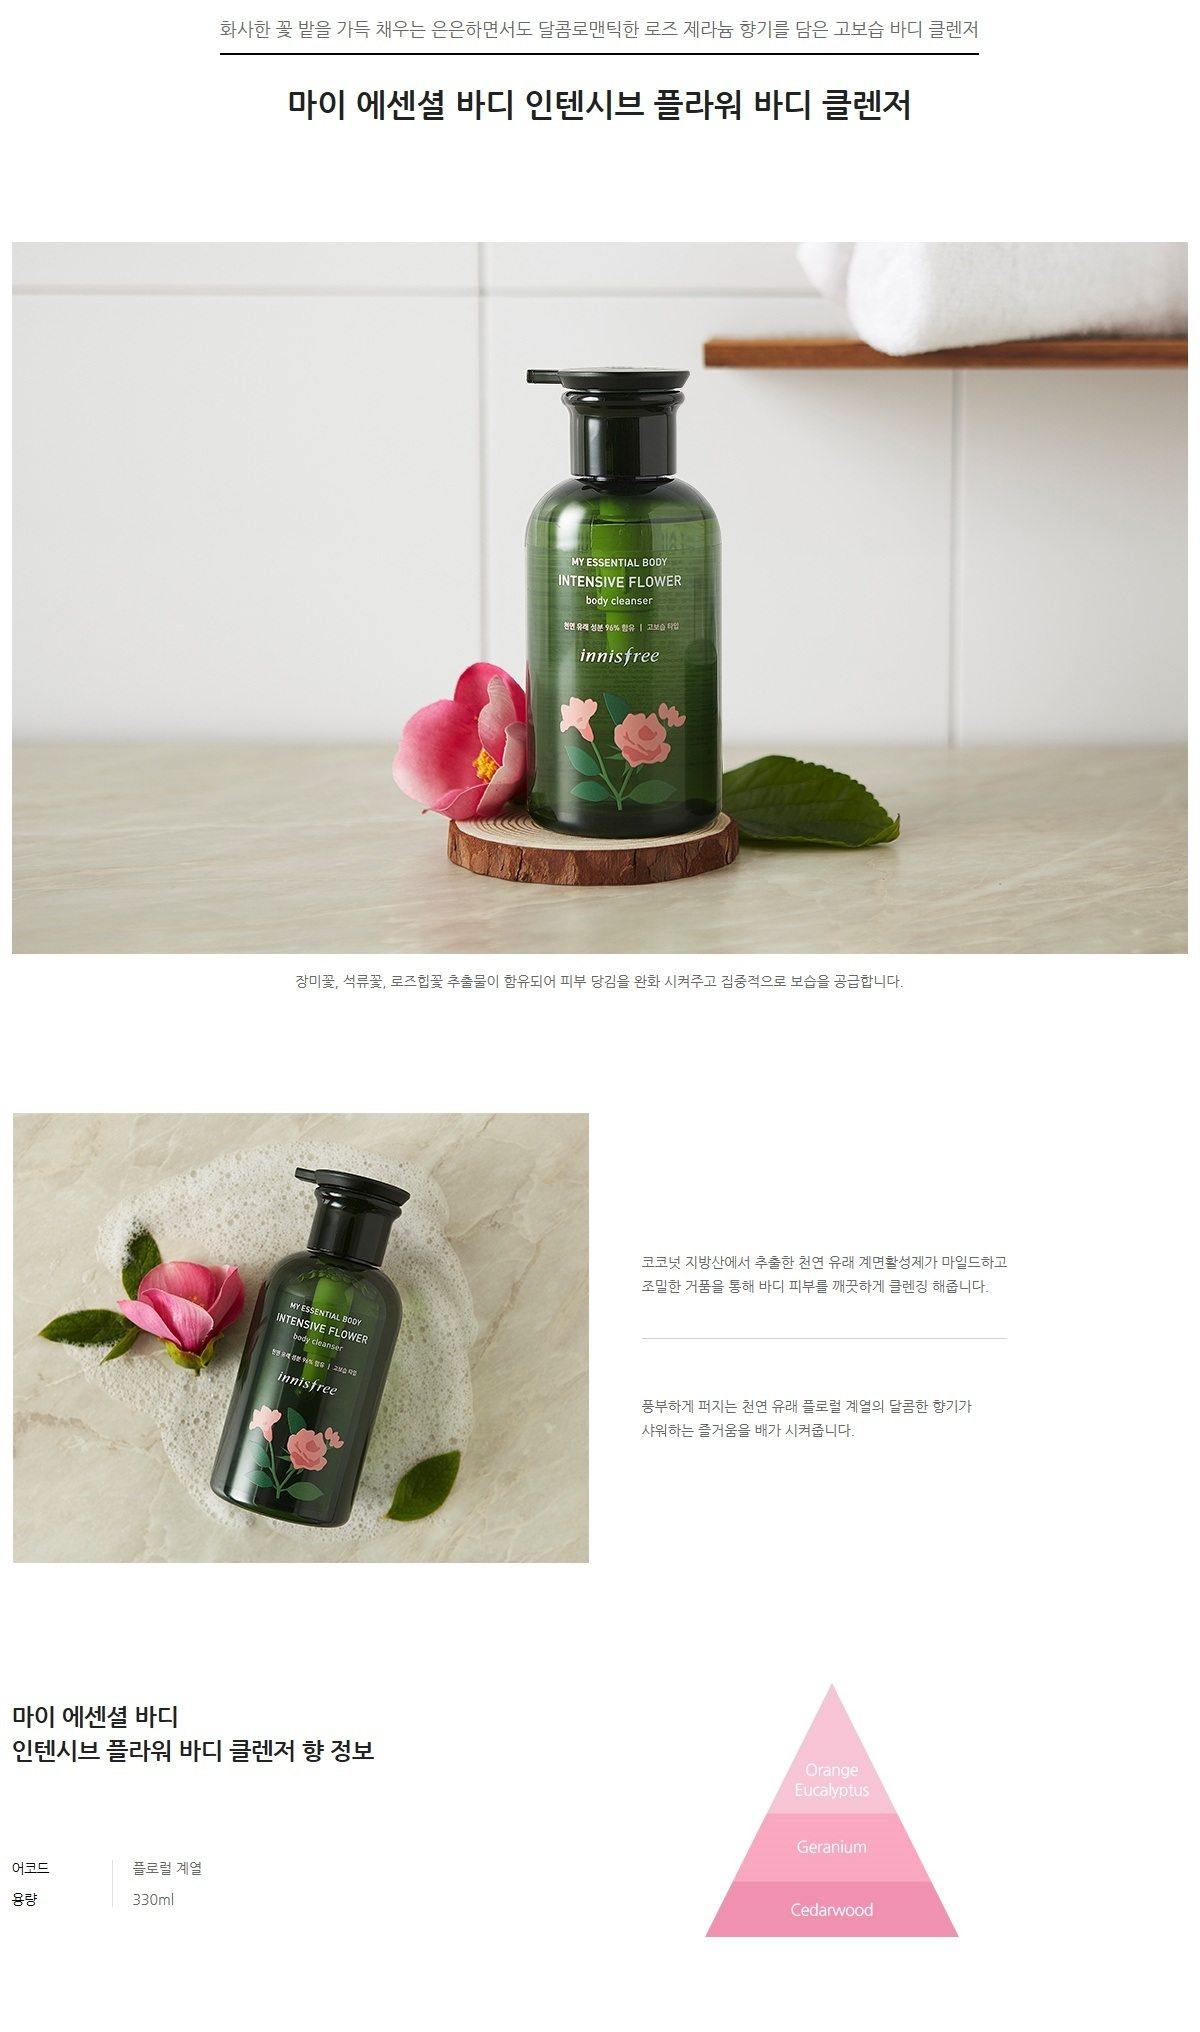 Innisfree My Essential Body Intensive Flower Body Cleanser korean cosmetic skincare product online shop malaysia usa mexico1